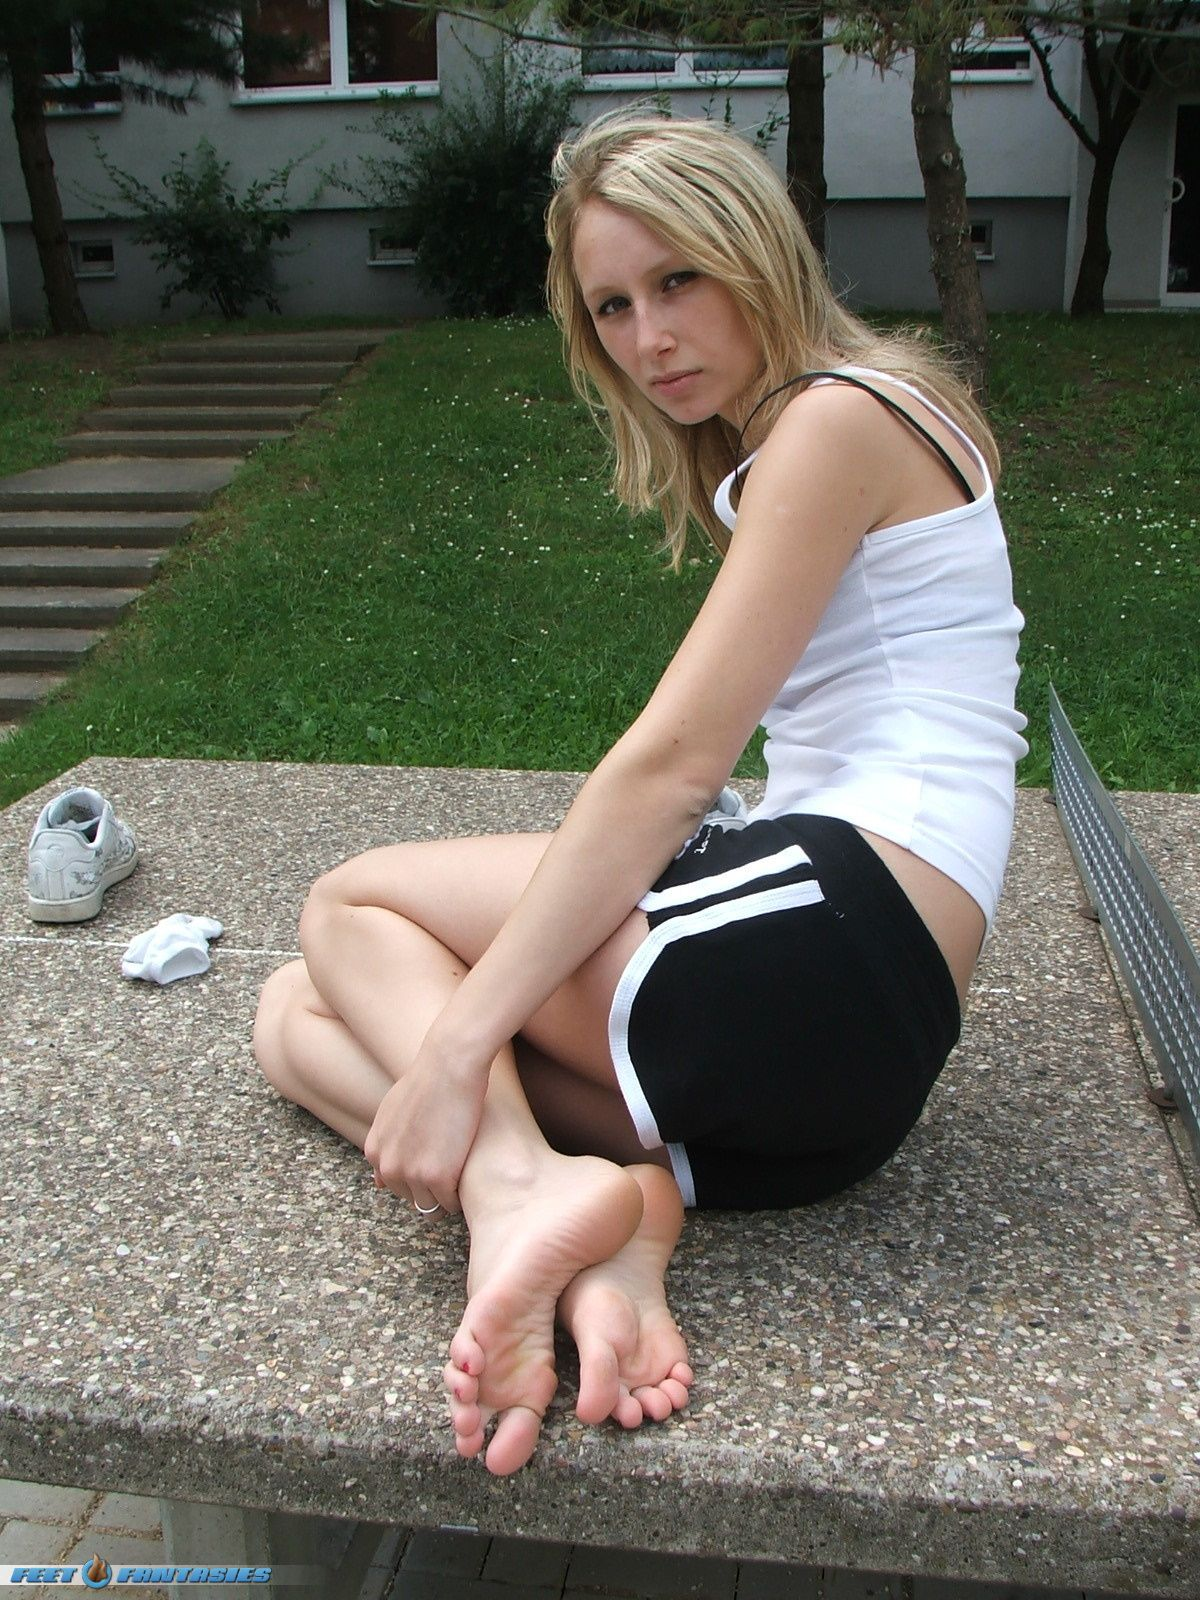 Sorry, not teen feet toes barefoot agree